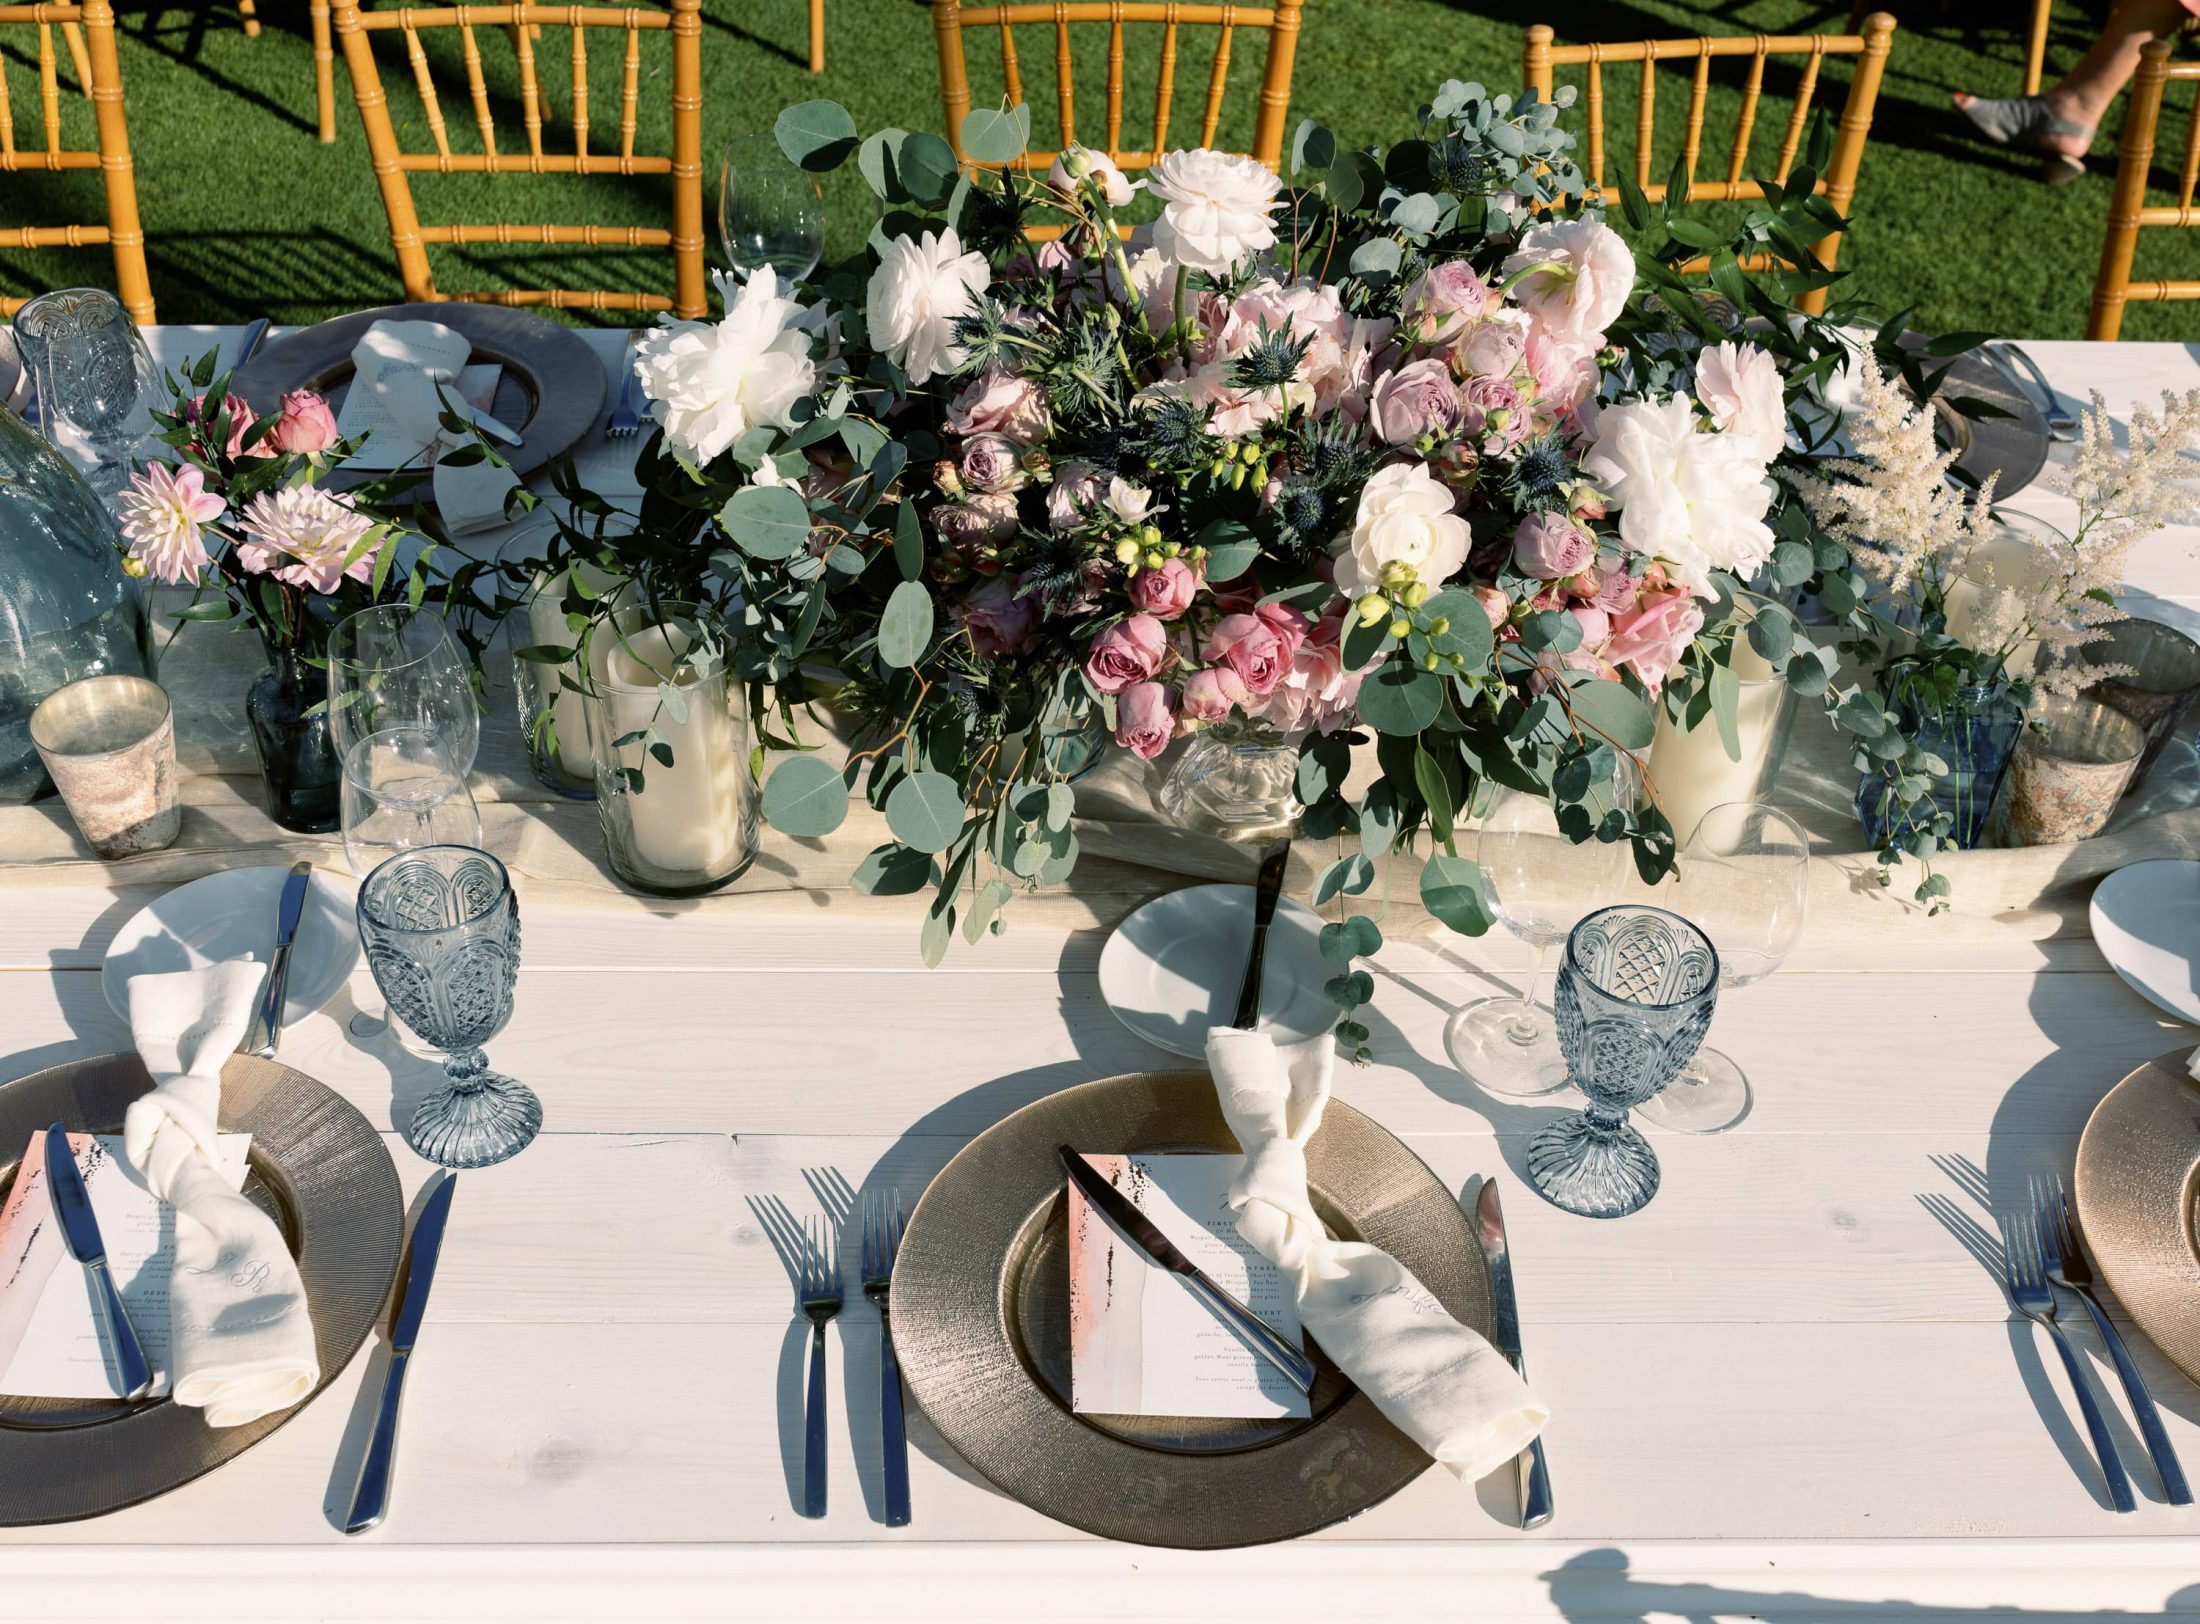 Table decor at outdoor reception at Maui wedding at Four Seasons Resort Maui in Wailea, Hawaii | Photo by James x Schulze